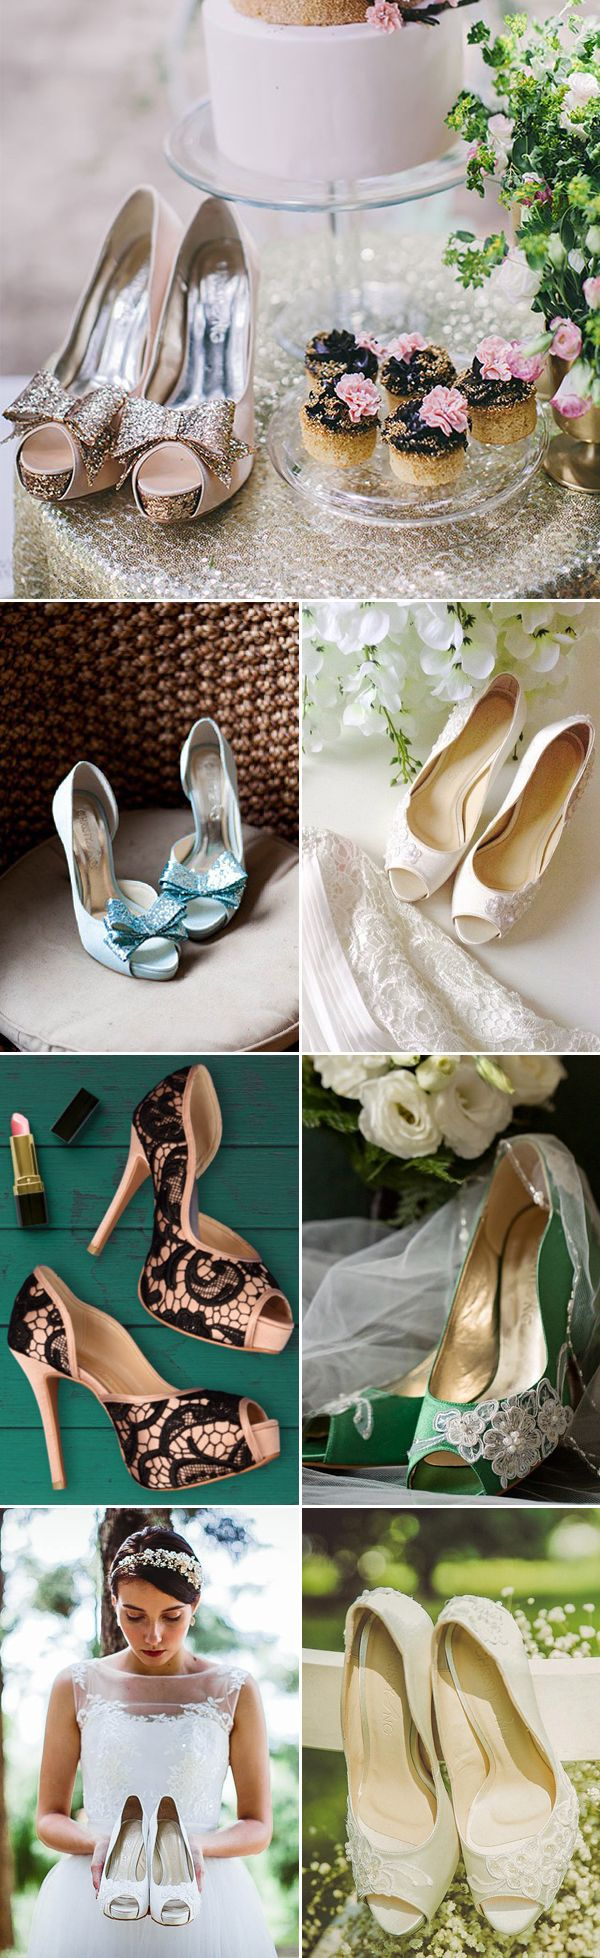 Christy Ng Sequined and Colorful Wedding Shoes / http://www.deerpearlflowers.com/top-7-bands-affordable-wedding-shoes-you-will-love/